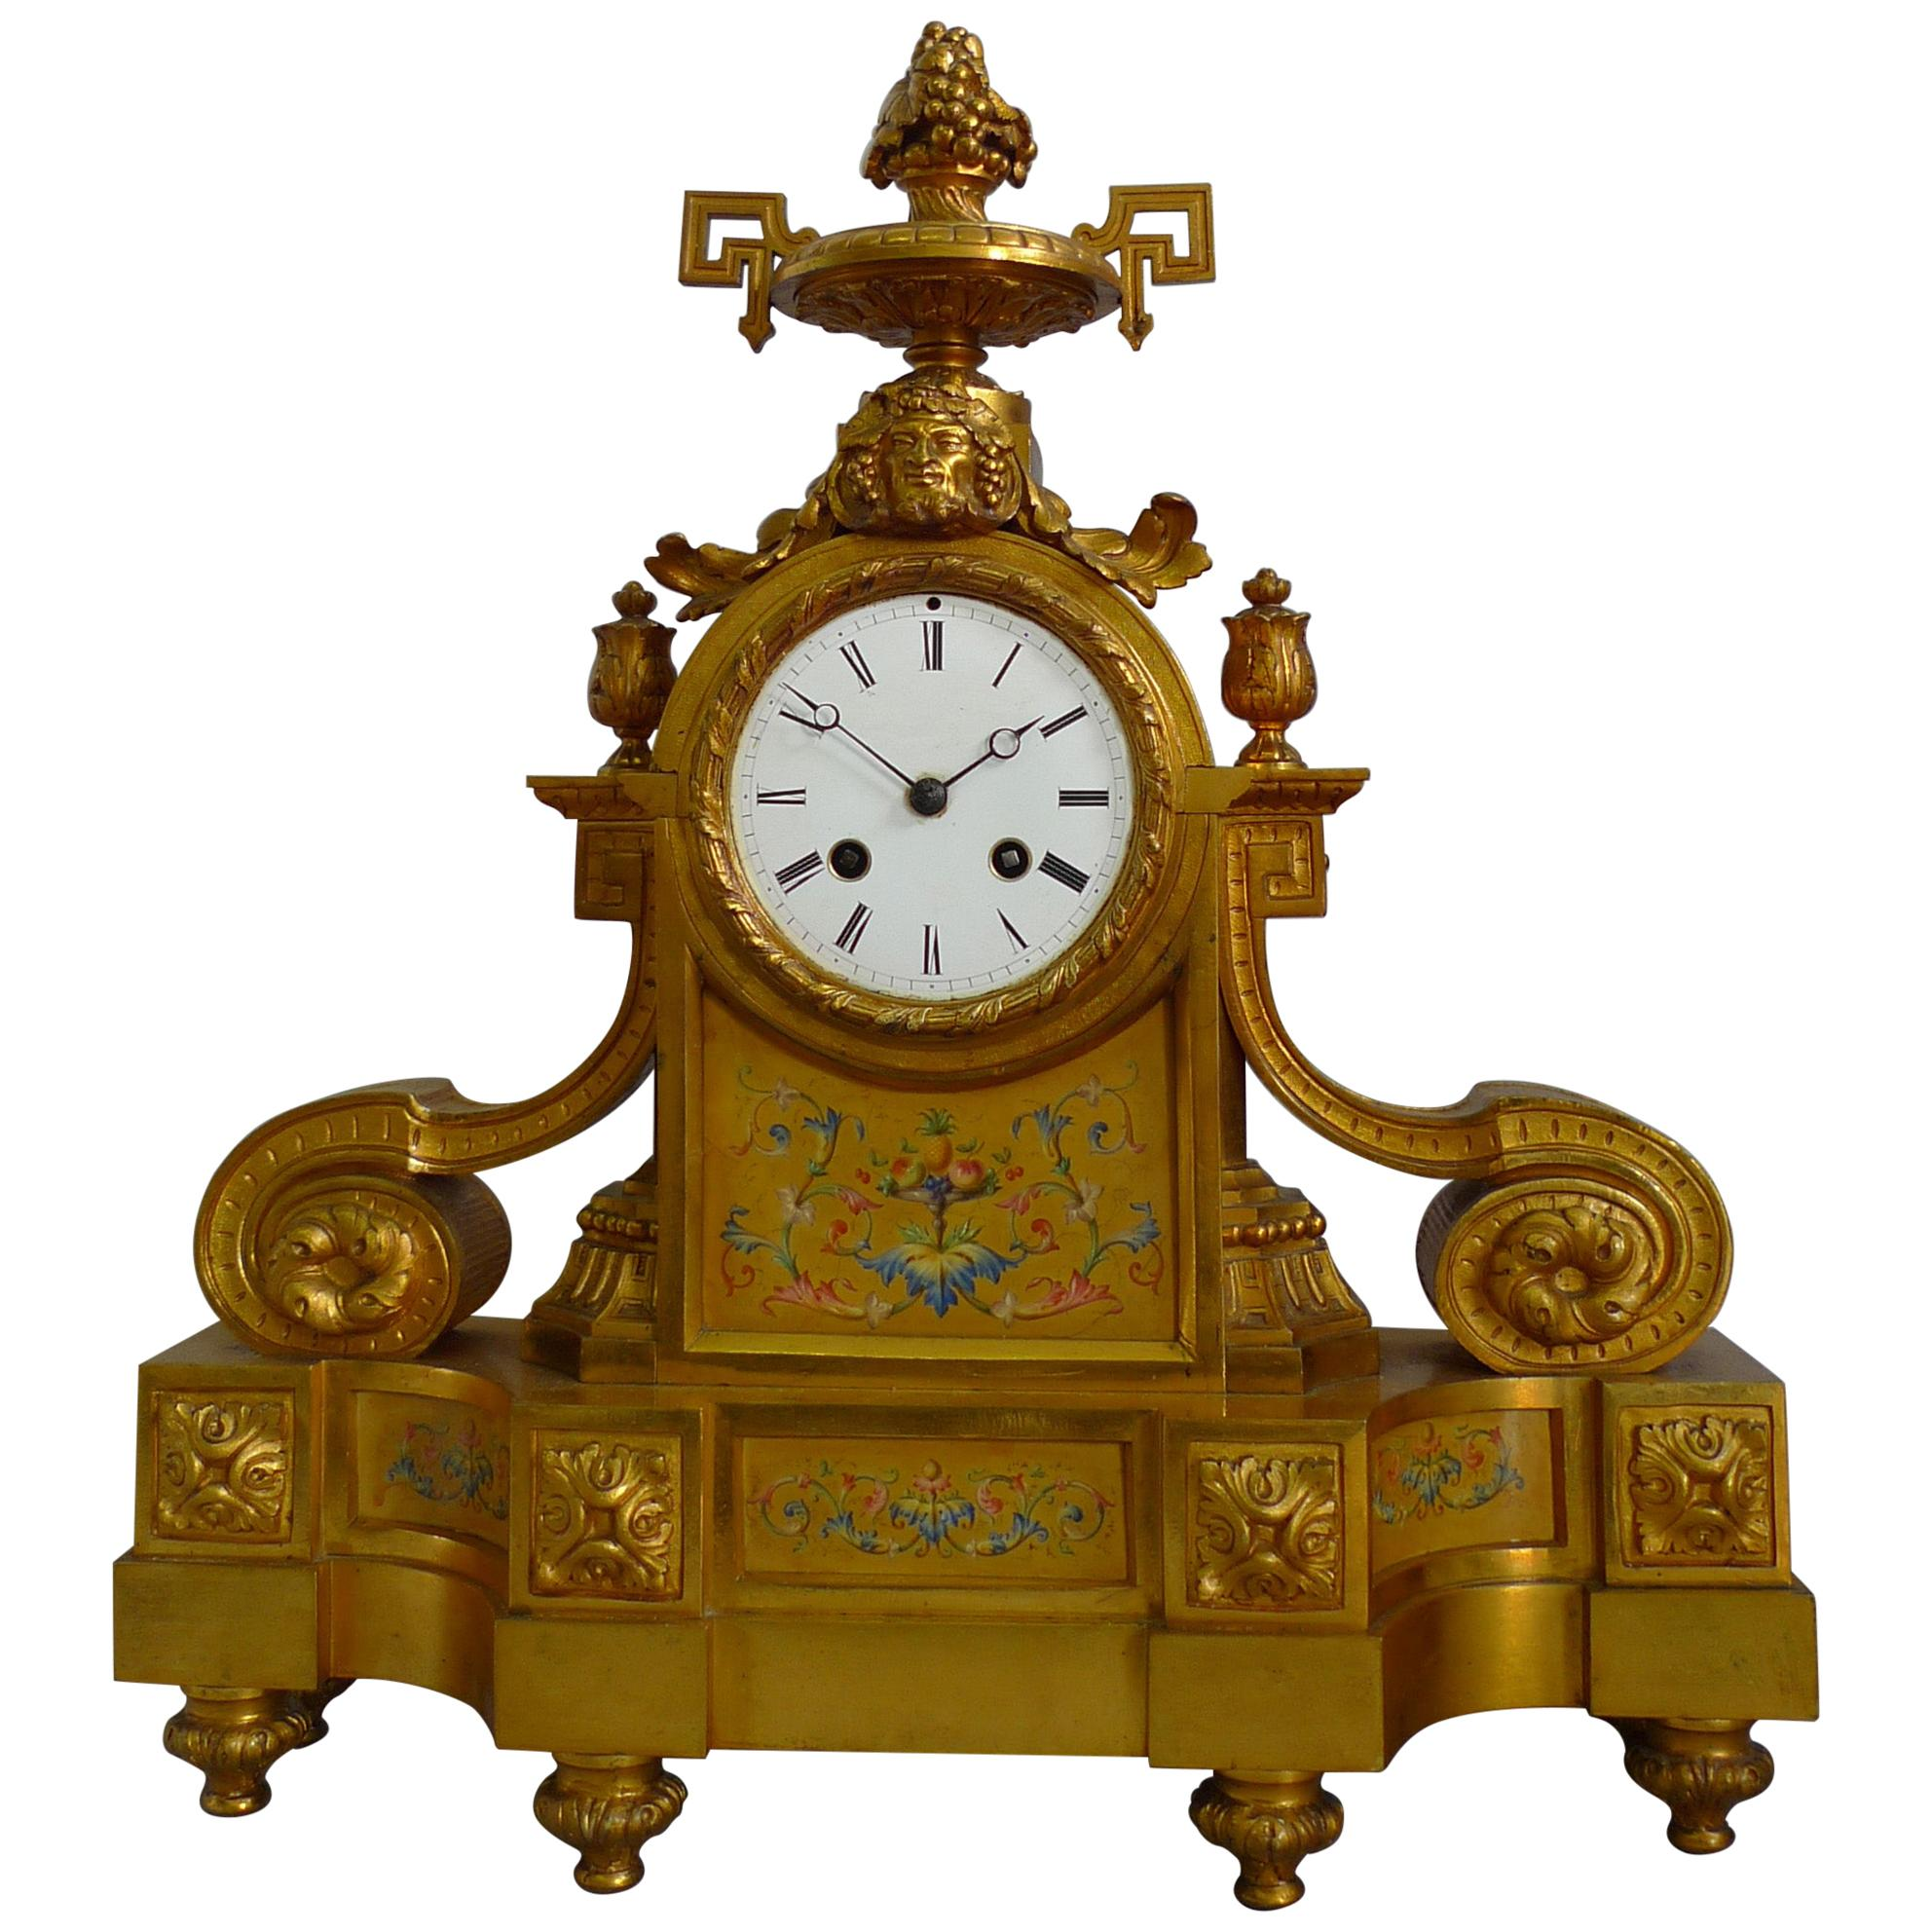 French Porcelain and Ormolu Mantel Clock Stamped in Bronze H. Picard